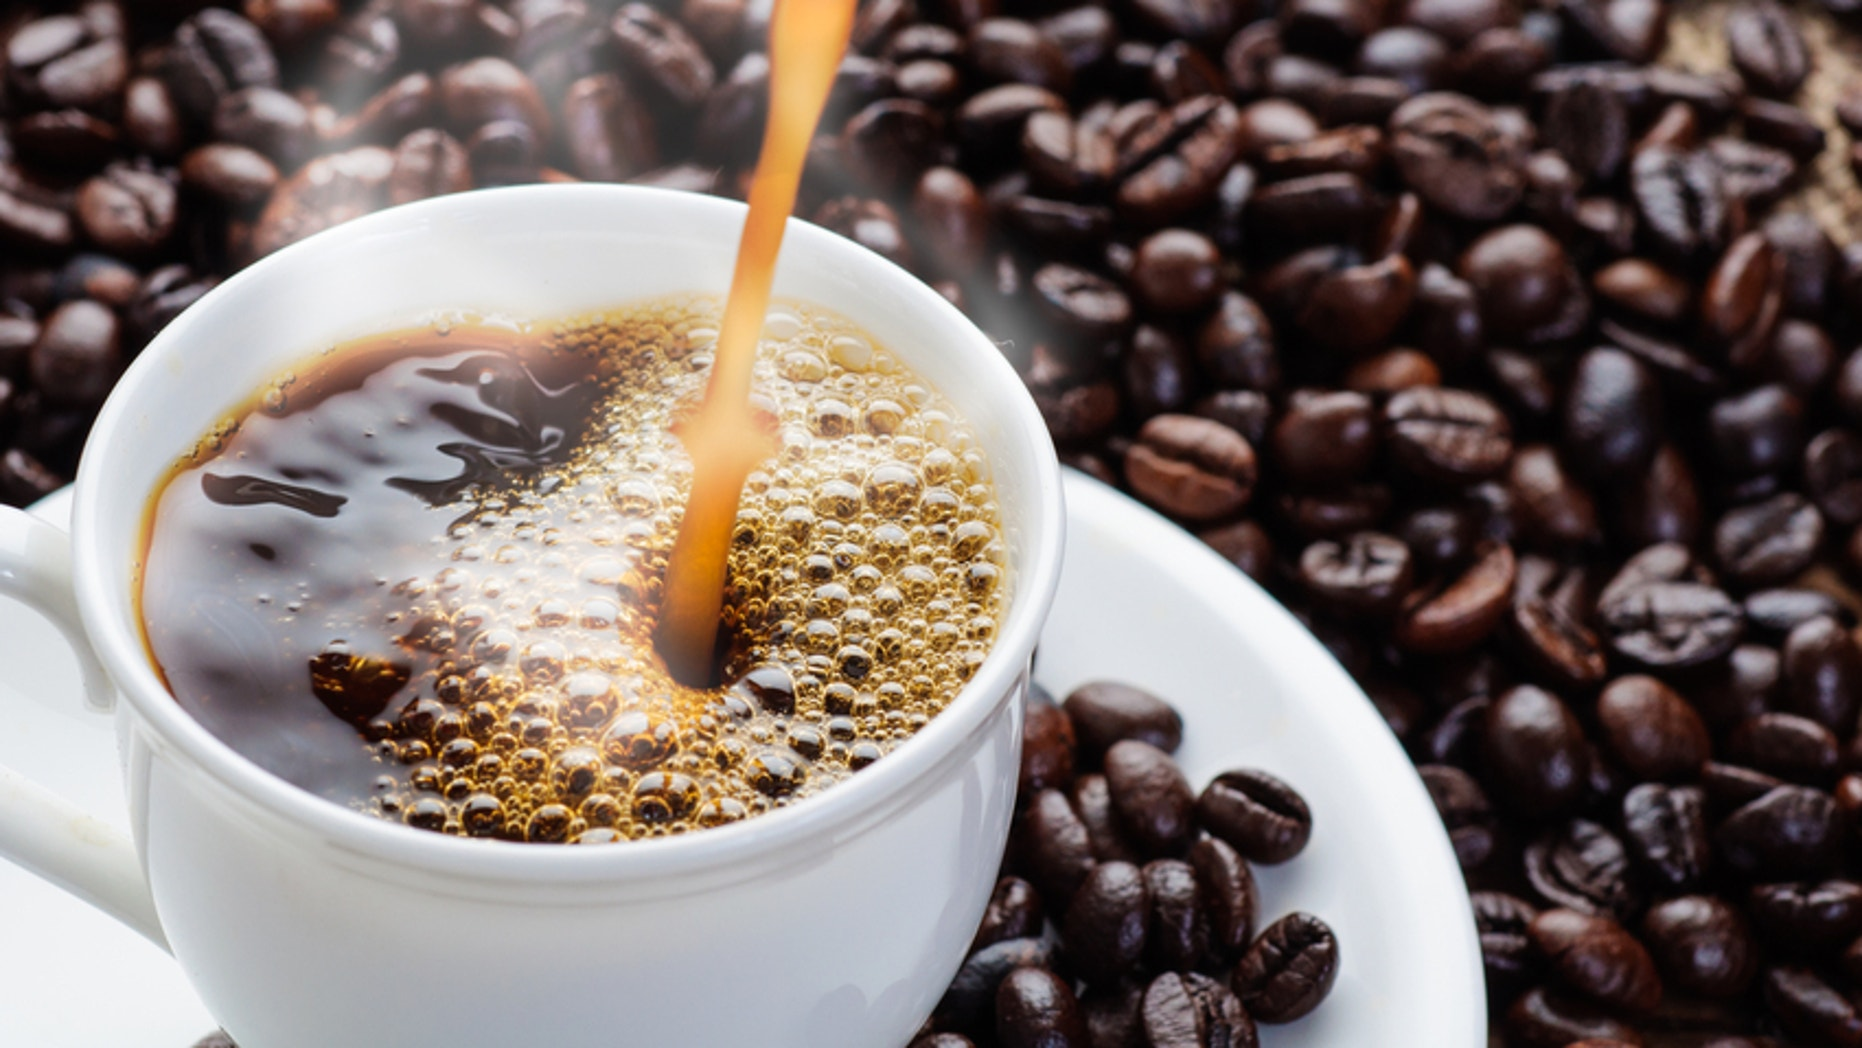 There are great coffee deals available today.